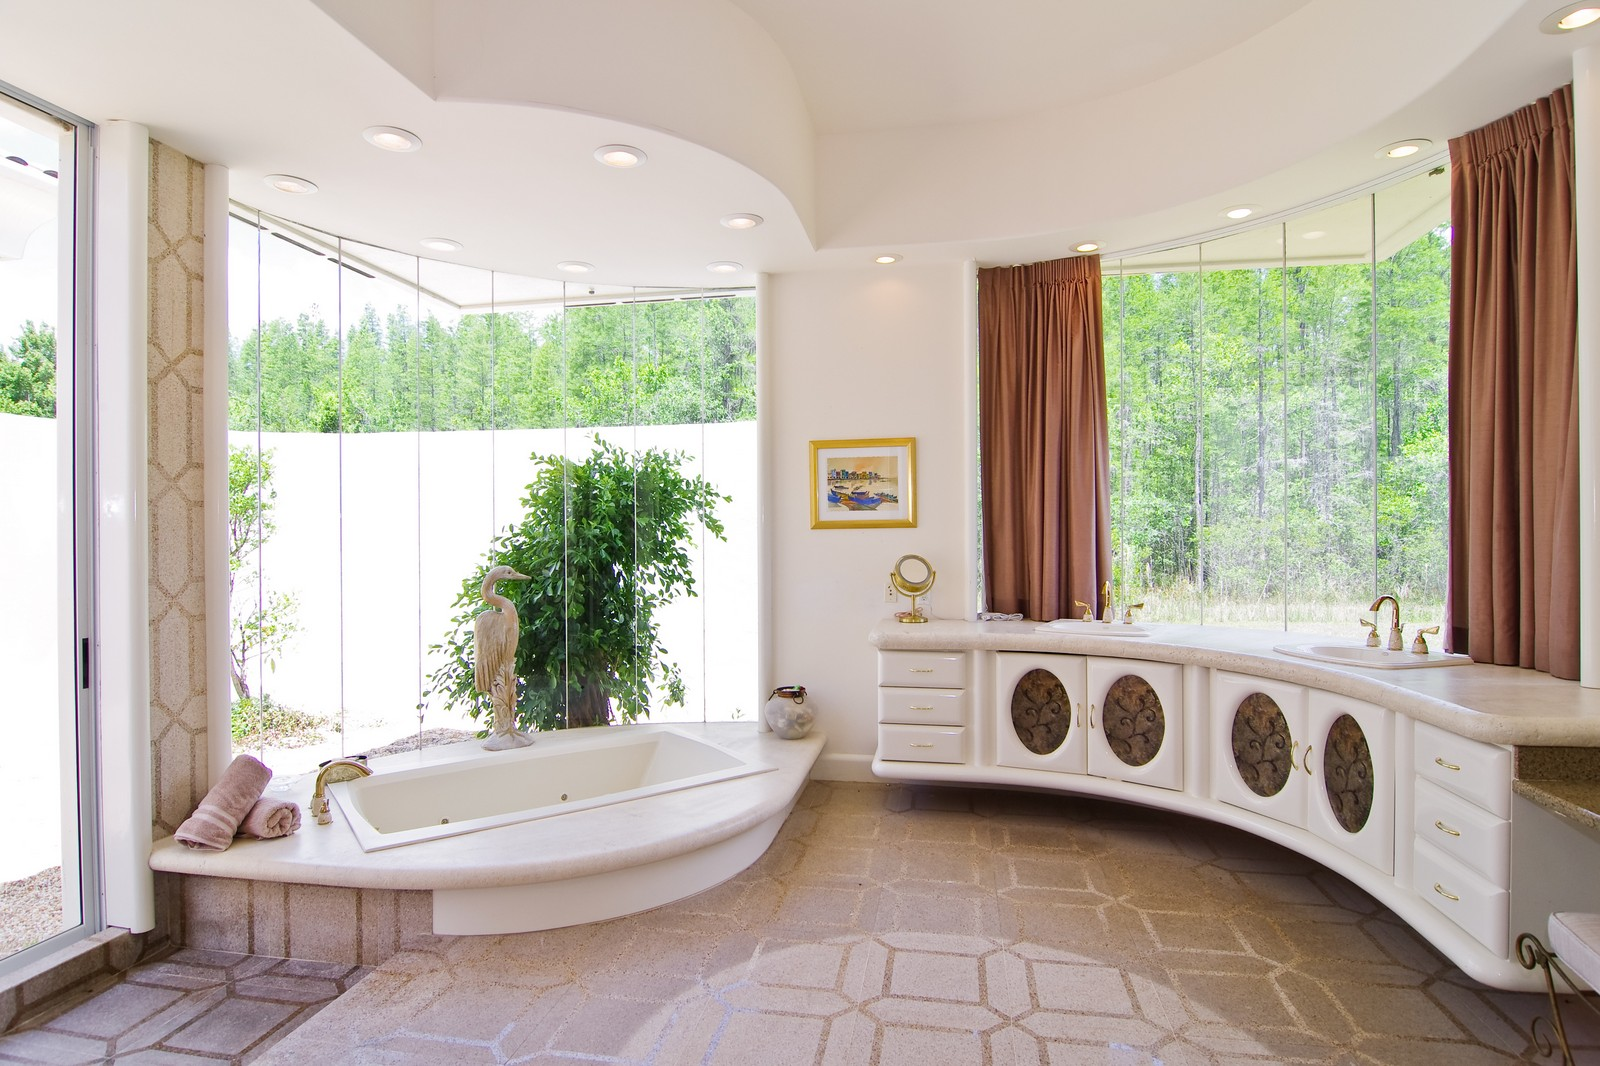 Real Estate Photography - 5601 TPC Blvd, Lutz, FL, 33558 - Master Bathroom